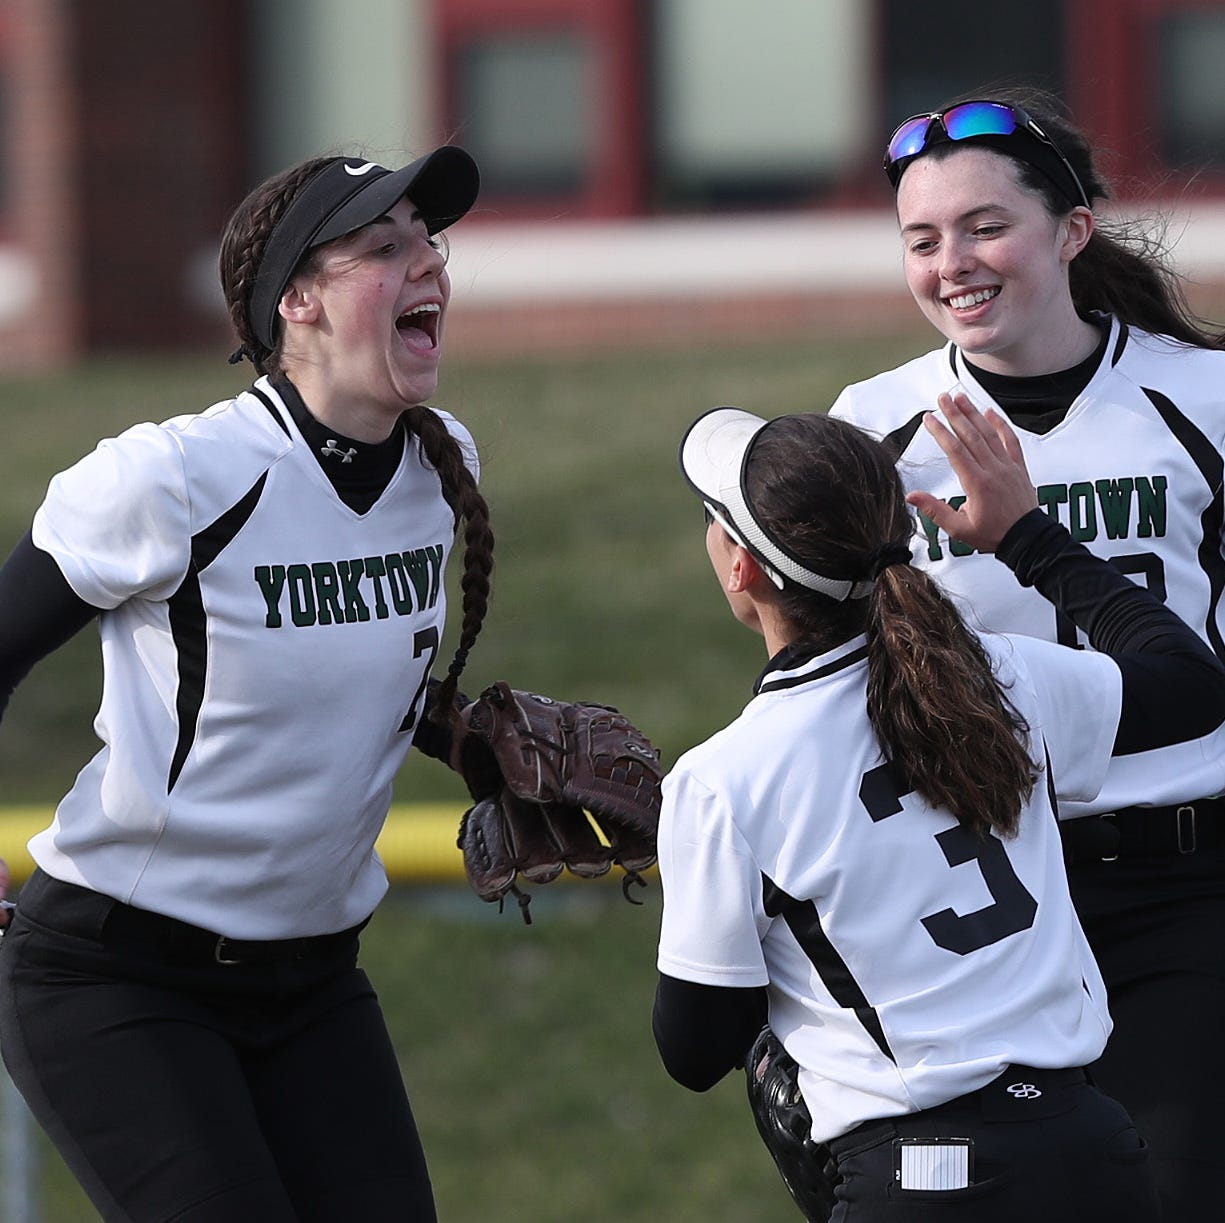 Softball: Yorktown captain Sam Riccardulli's love for the game undeterred by diabetes